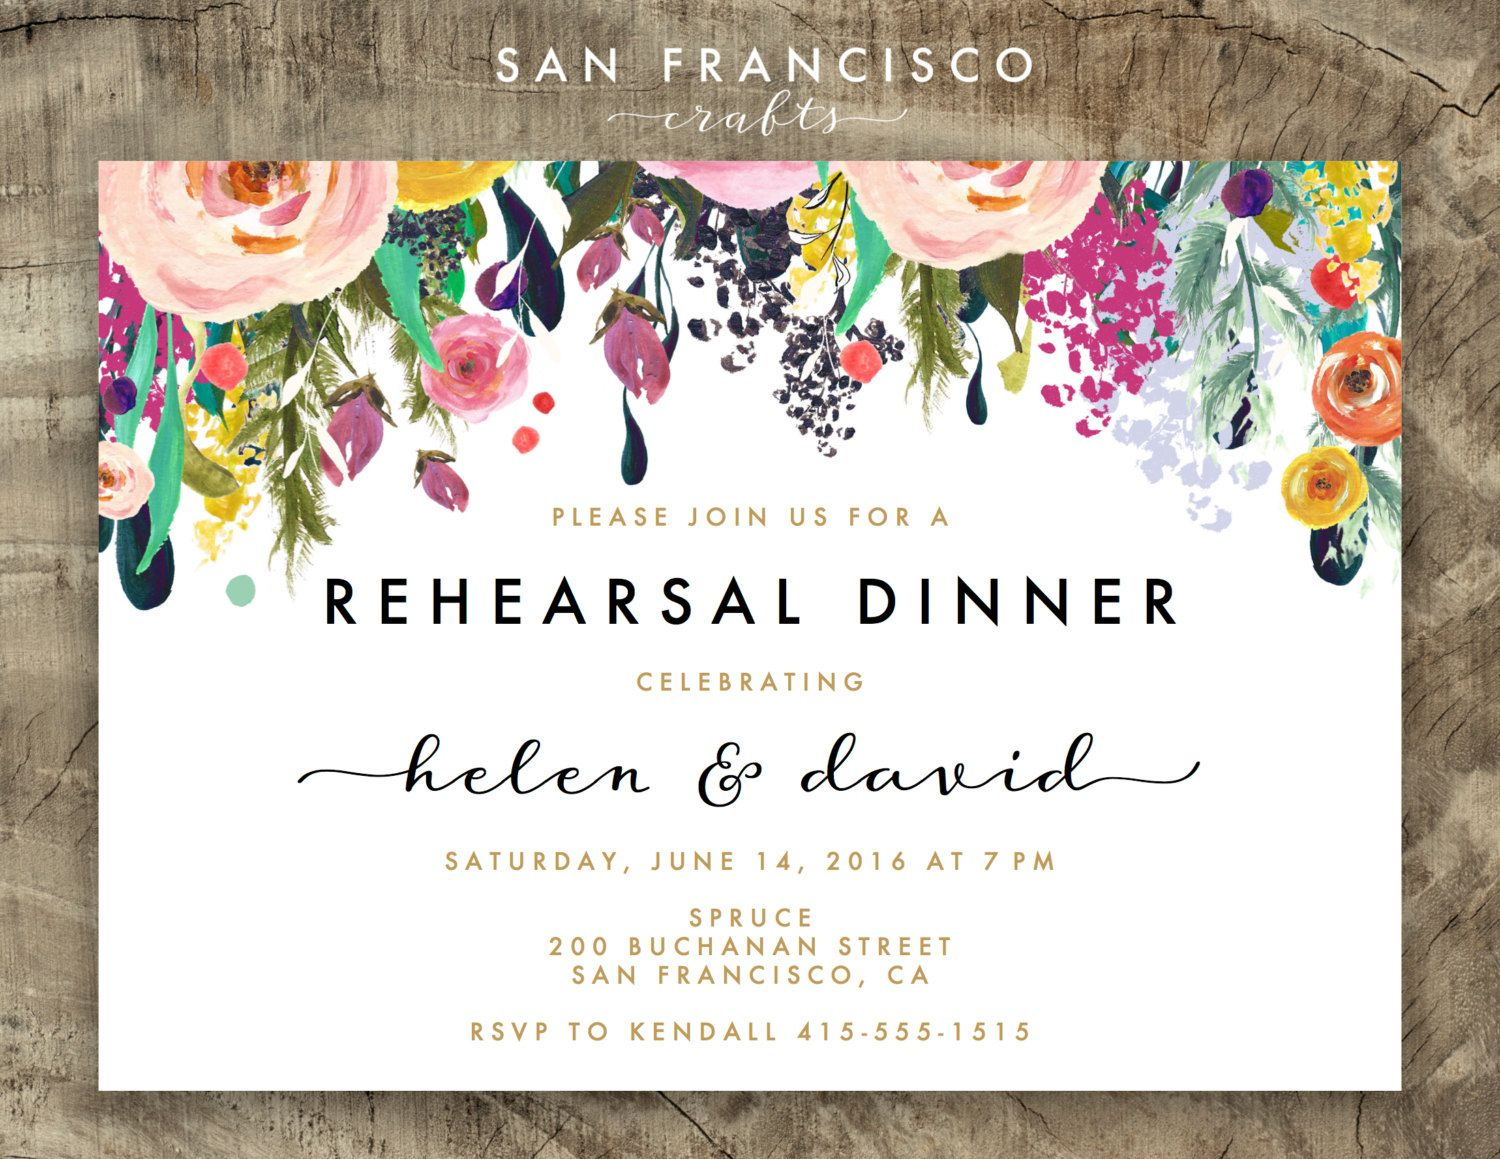 Best 25 Rehearsal dinner invitations ideas – After Rehearsal Dinner Party Invitations